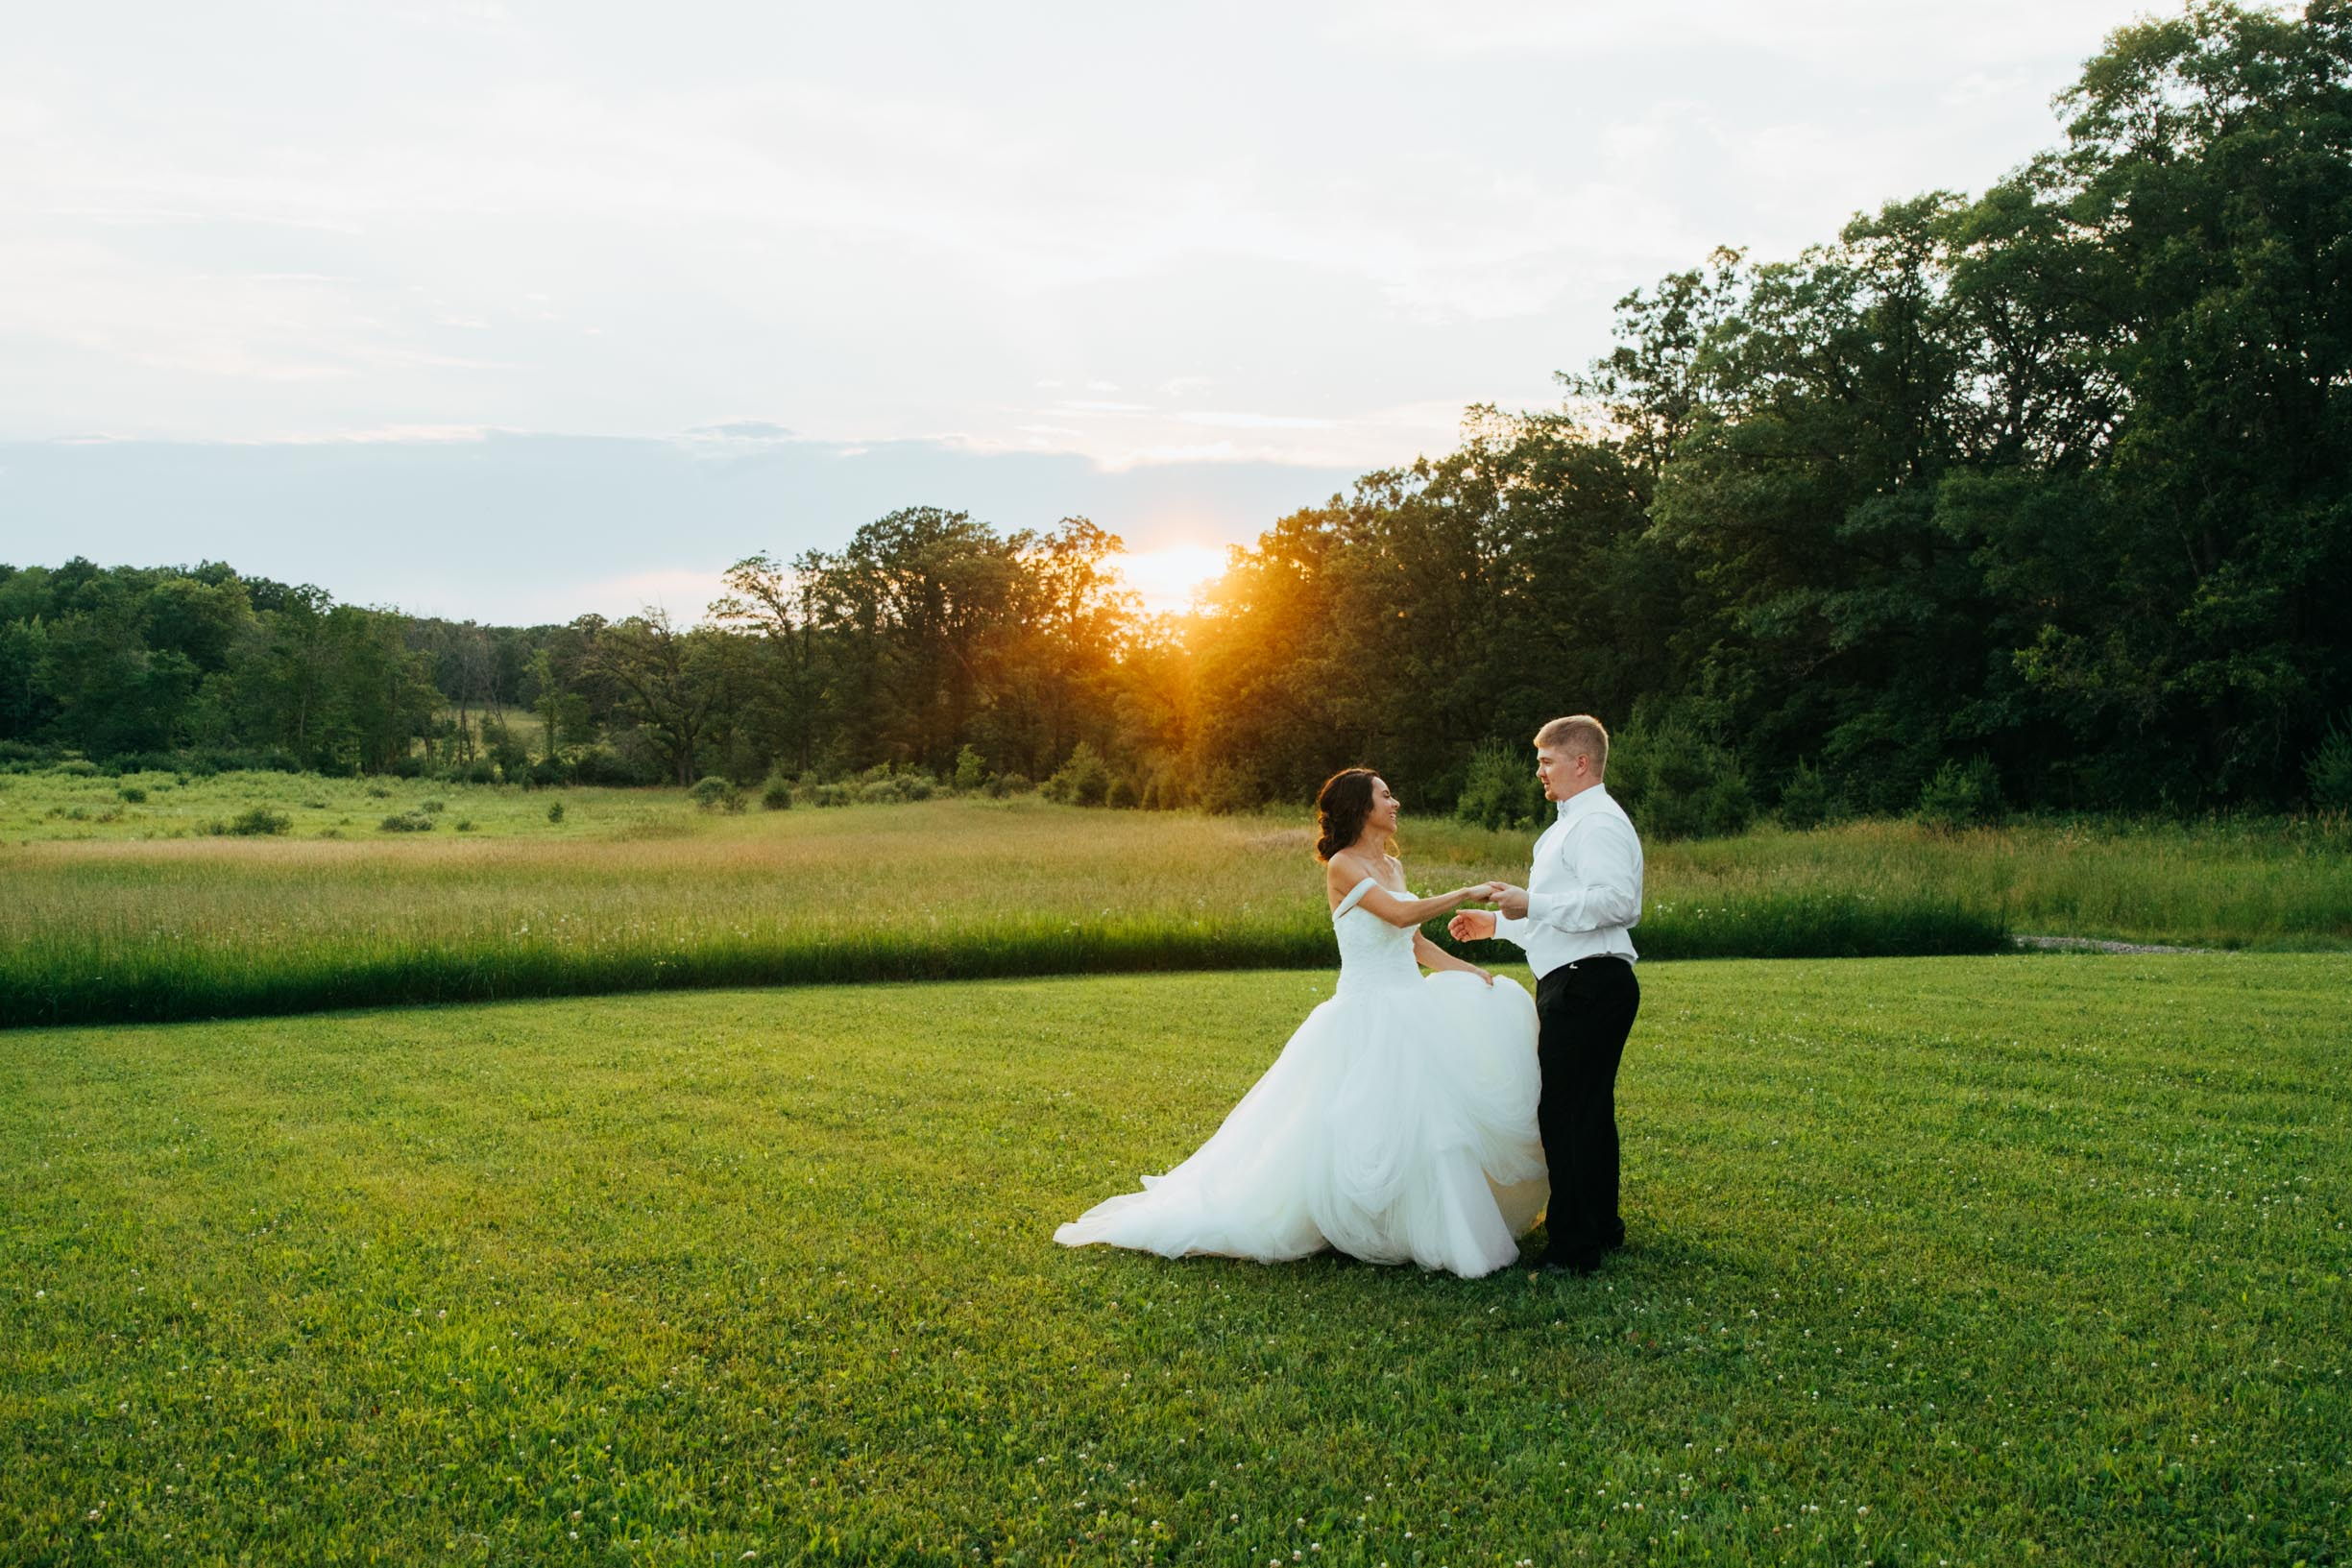 Minnesota_Bride_Groom_Portrait_Sunset_Portraits_Vineyard4.jpg